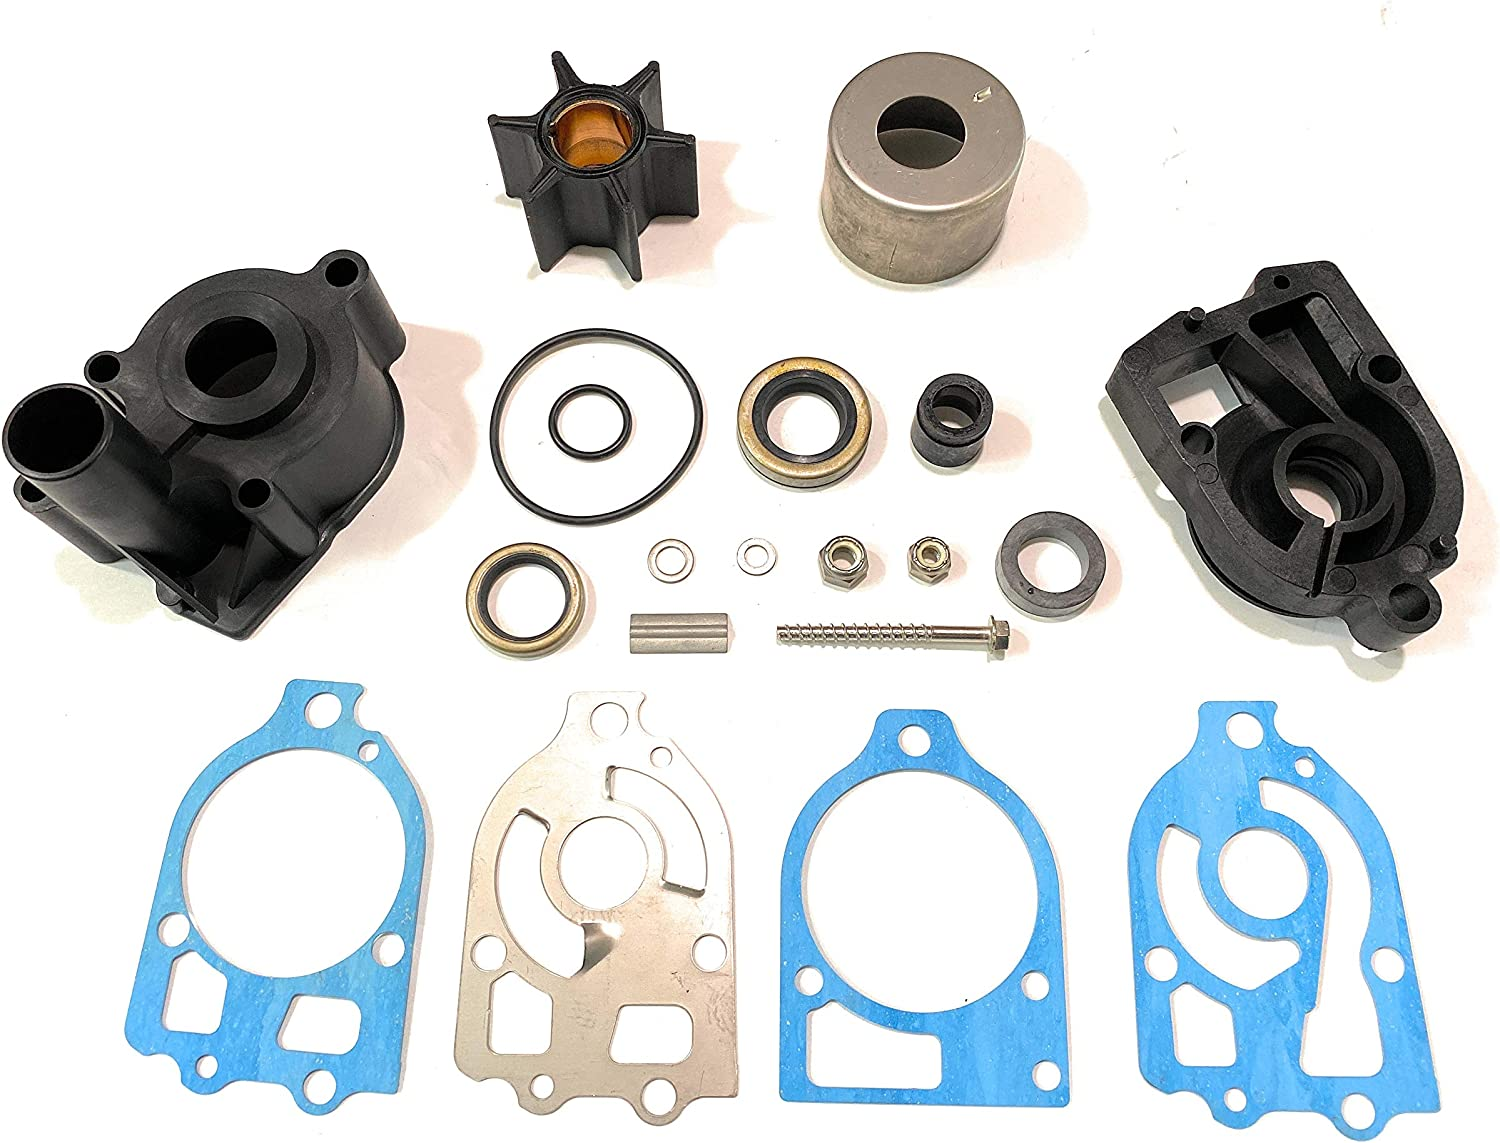 UPPER PUMP HOUSING KIT 18-3517 **NEW** PART NO WITHOUT BASE